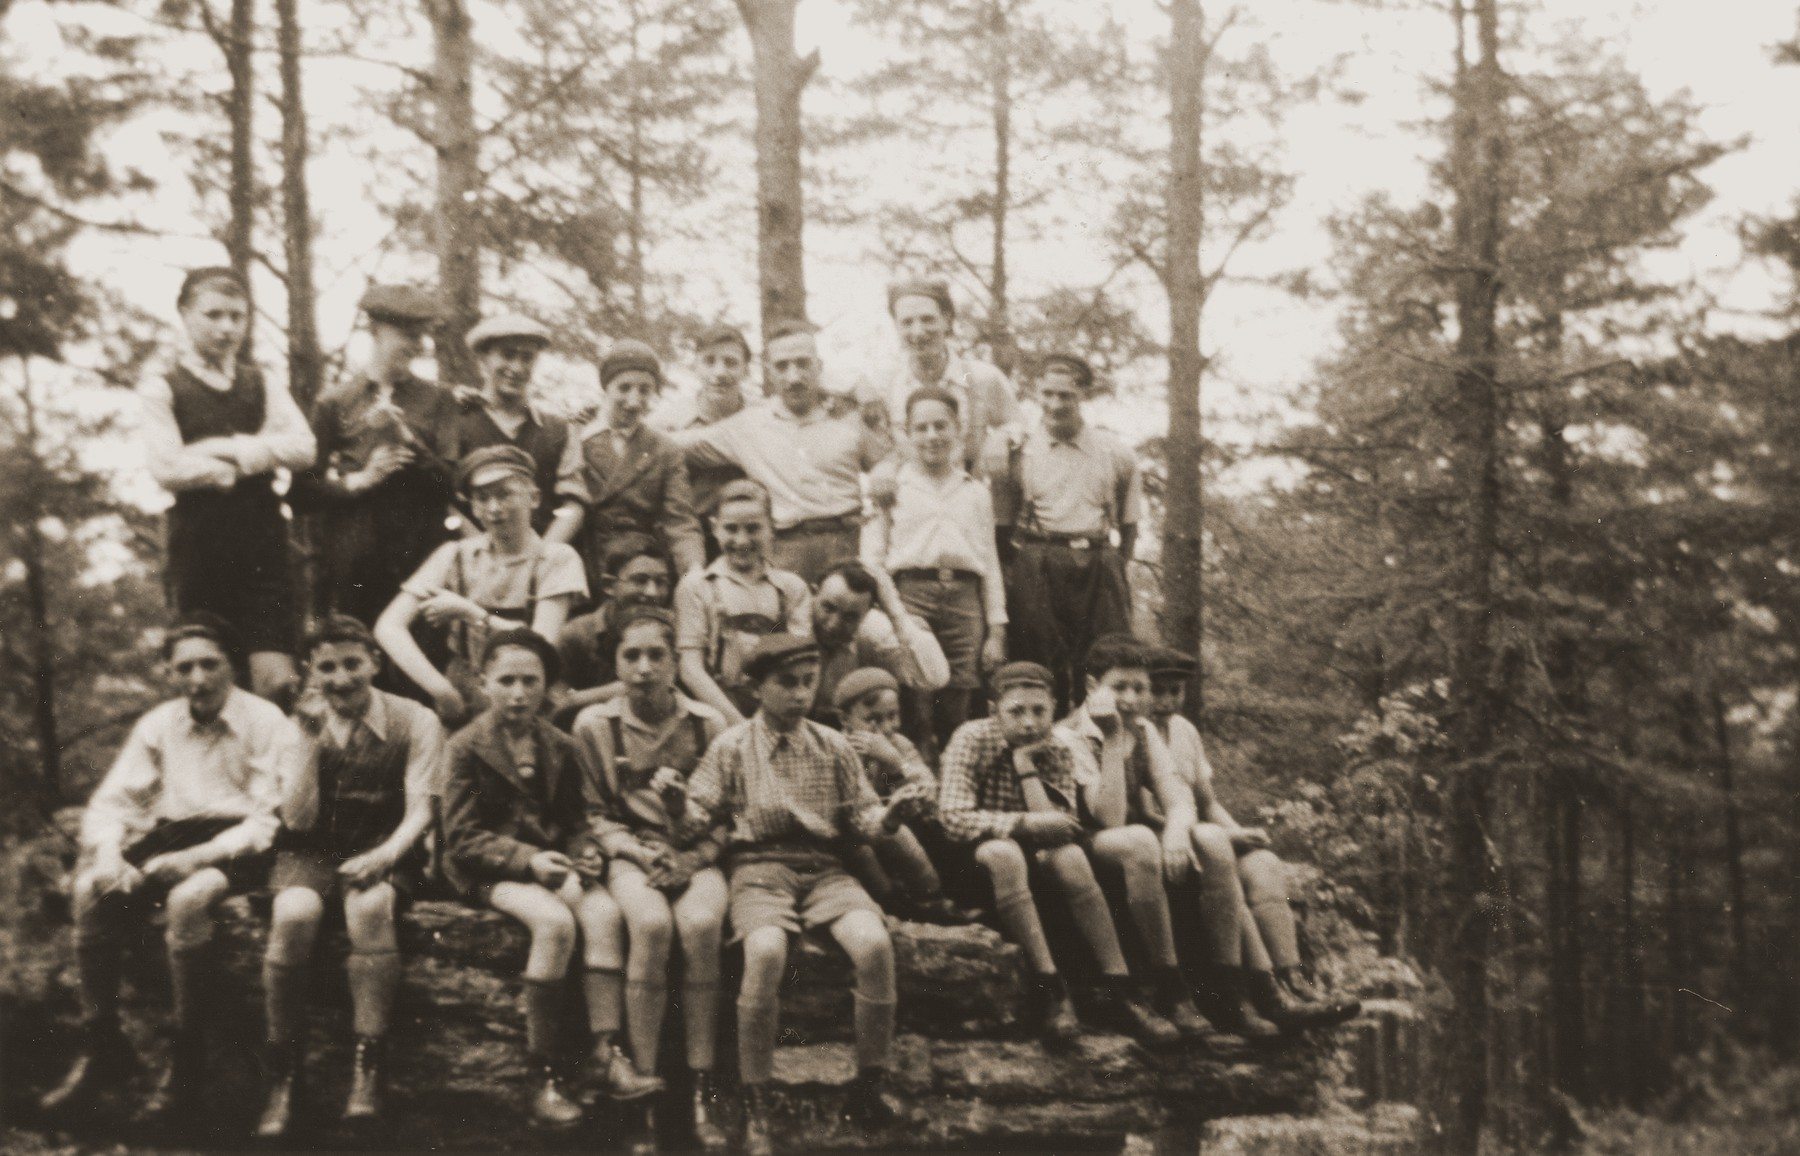 Members of the Ezra youth movement during a summer excursion in the woods.